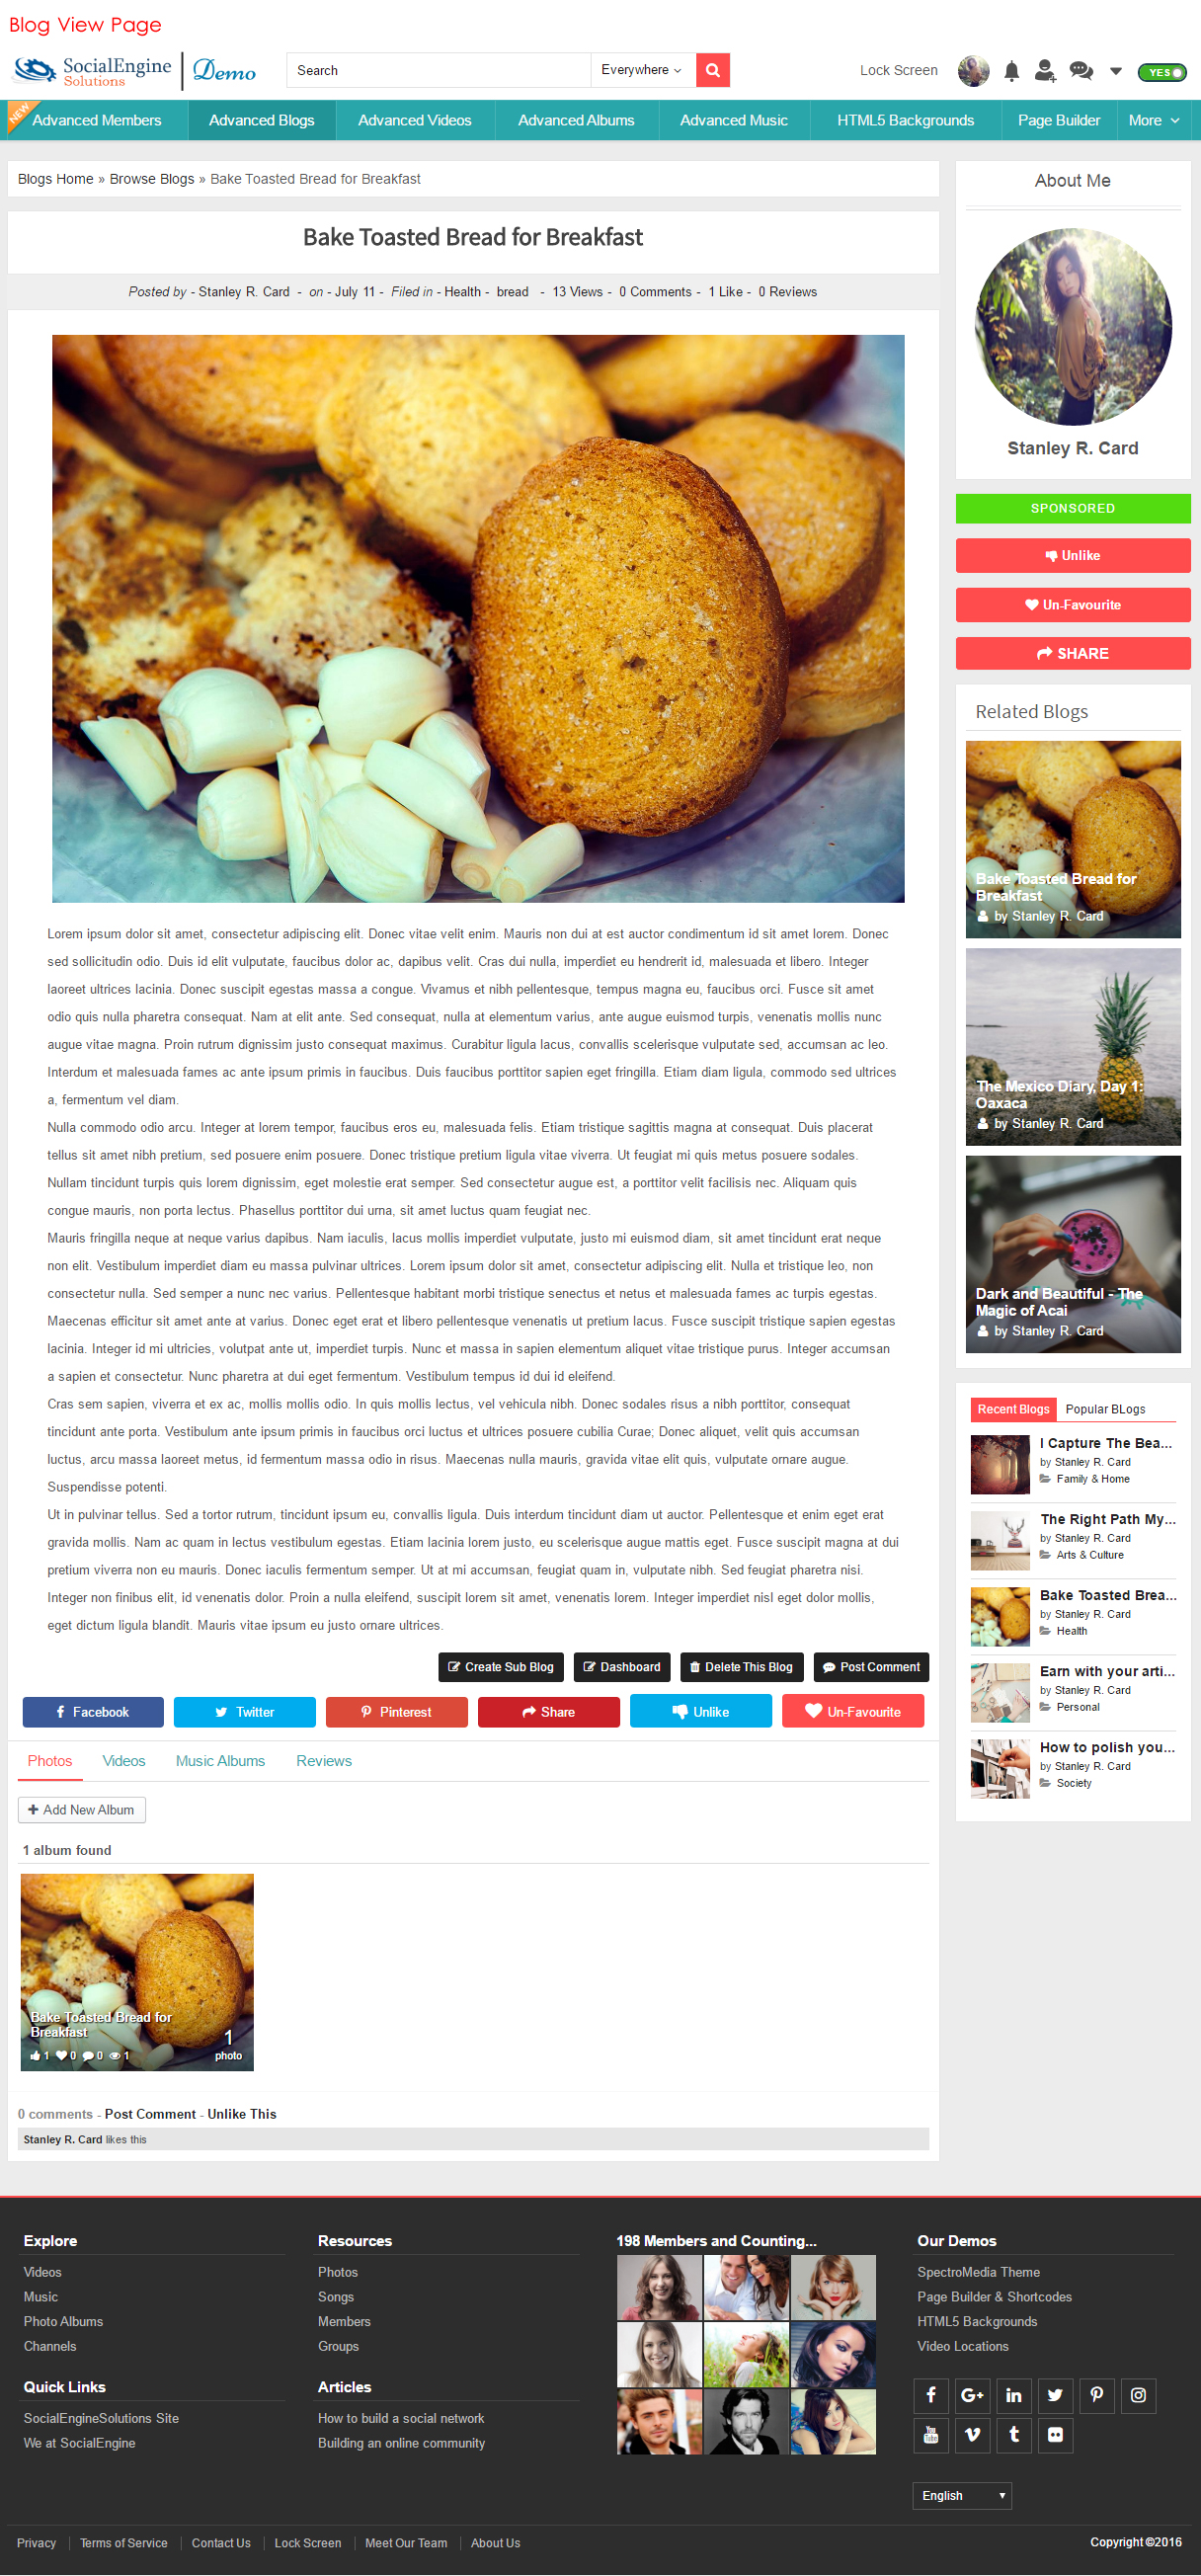 Blog View Page